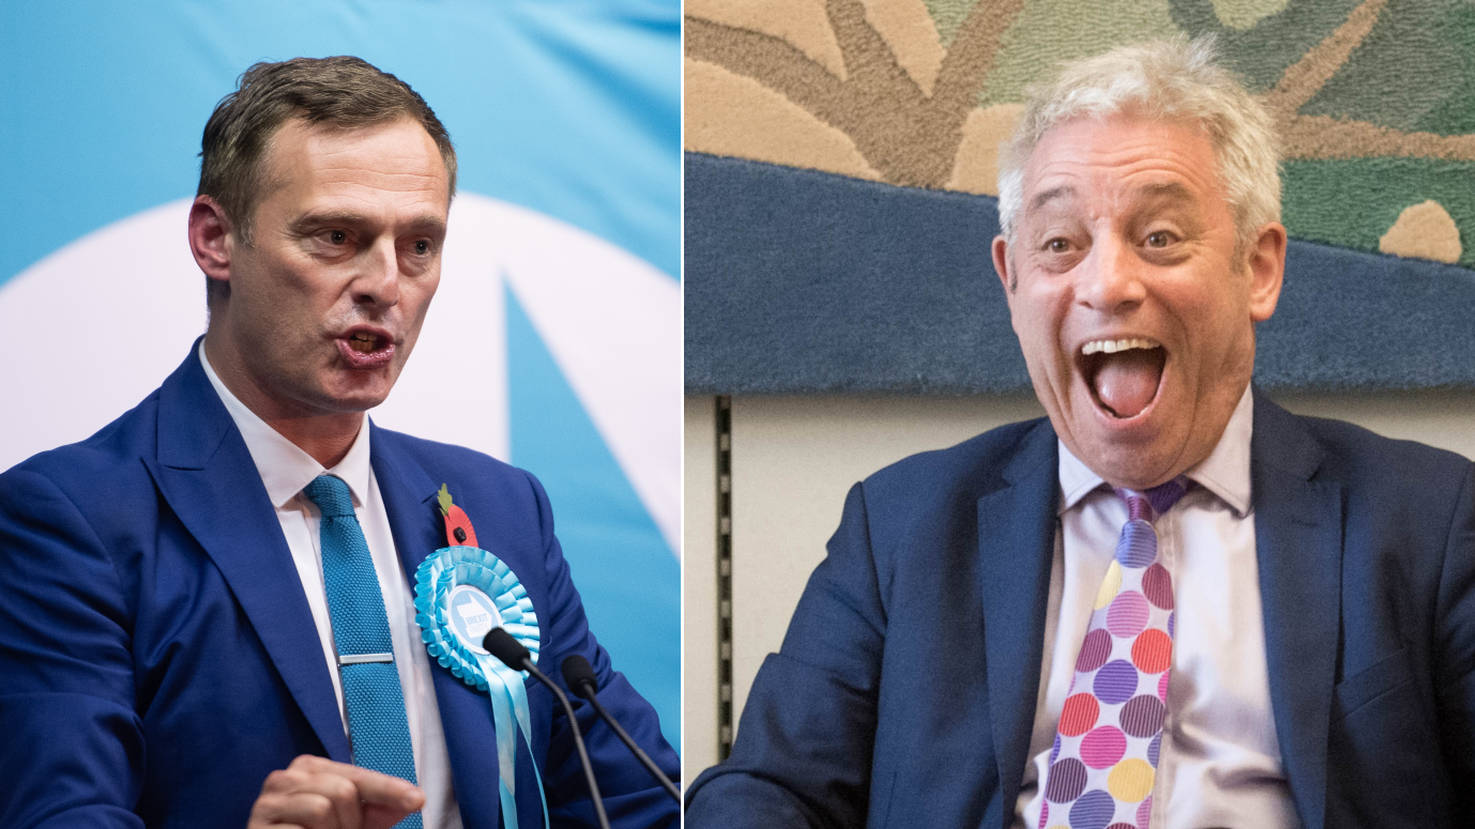 Brexit Party MEP's Brutal Response To John Bercow's Claim Brexit Is Huge Mistake